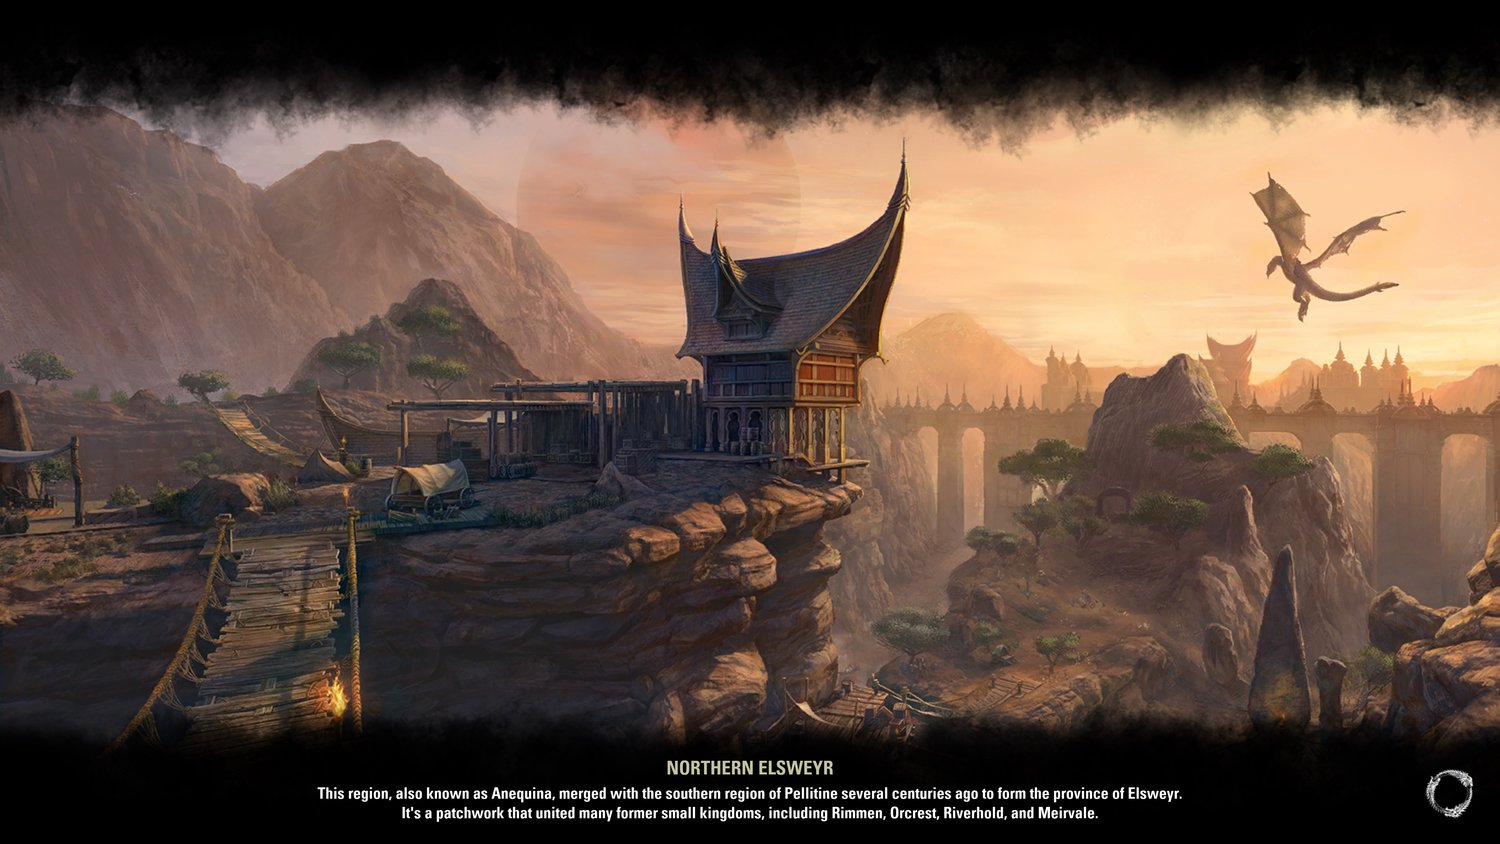 ELDER SCROLLS ONLINE Has a Bright Future in Elsweyr